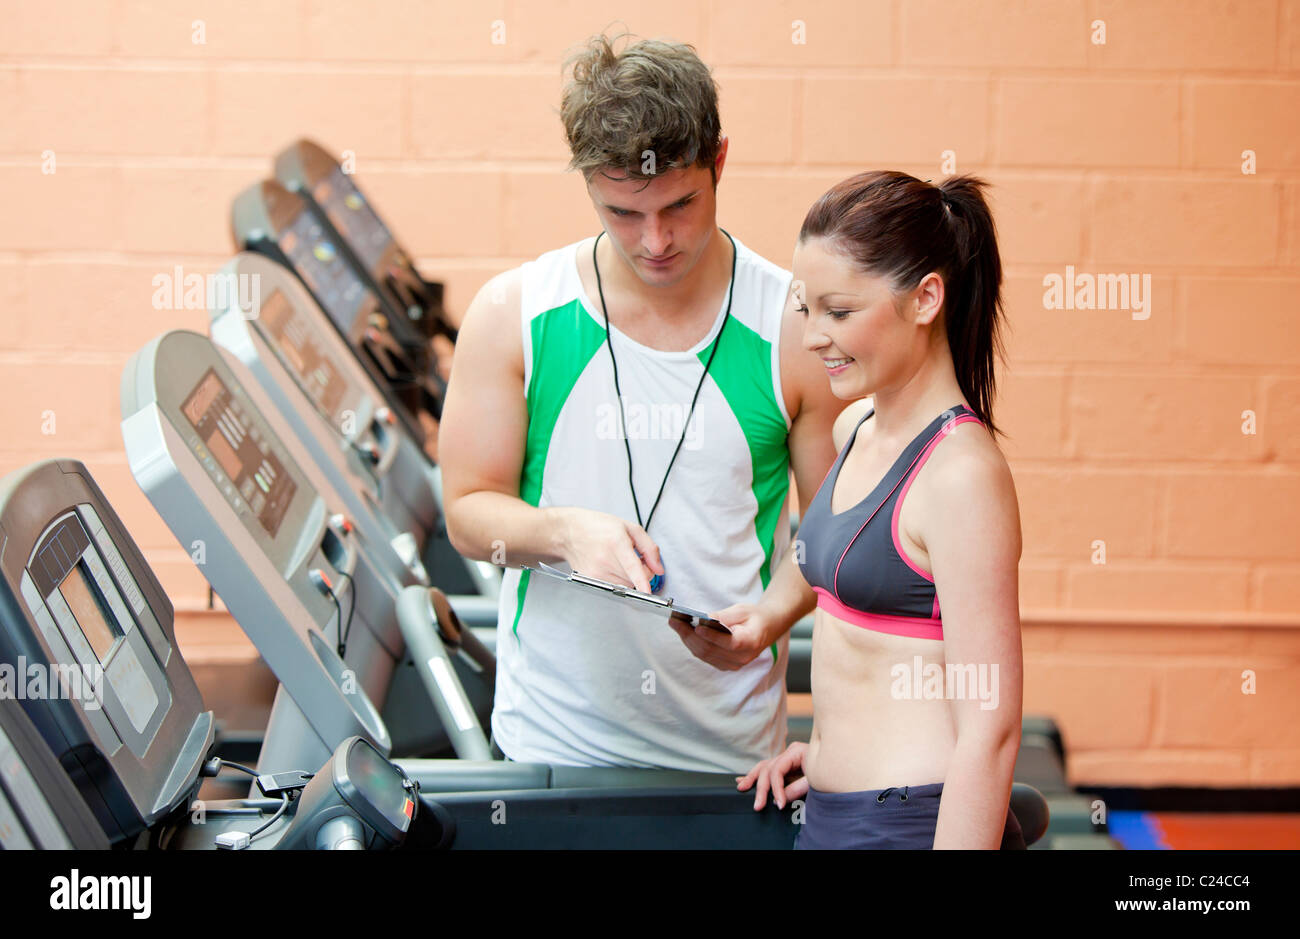 Serious coach giving instruction to a female athlete standing on a treadmill - Stock Image